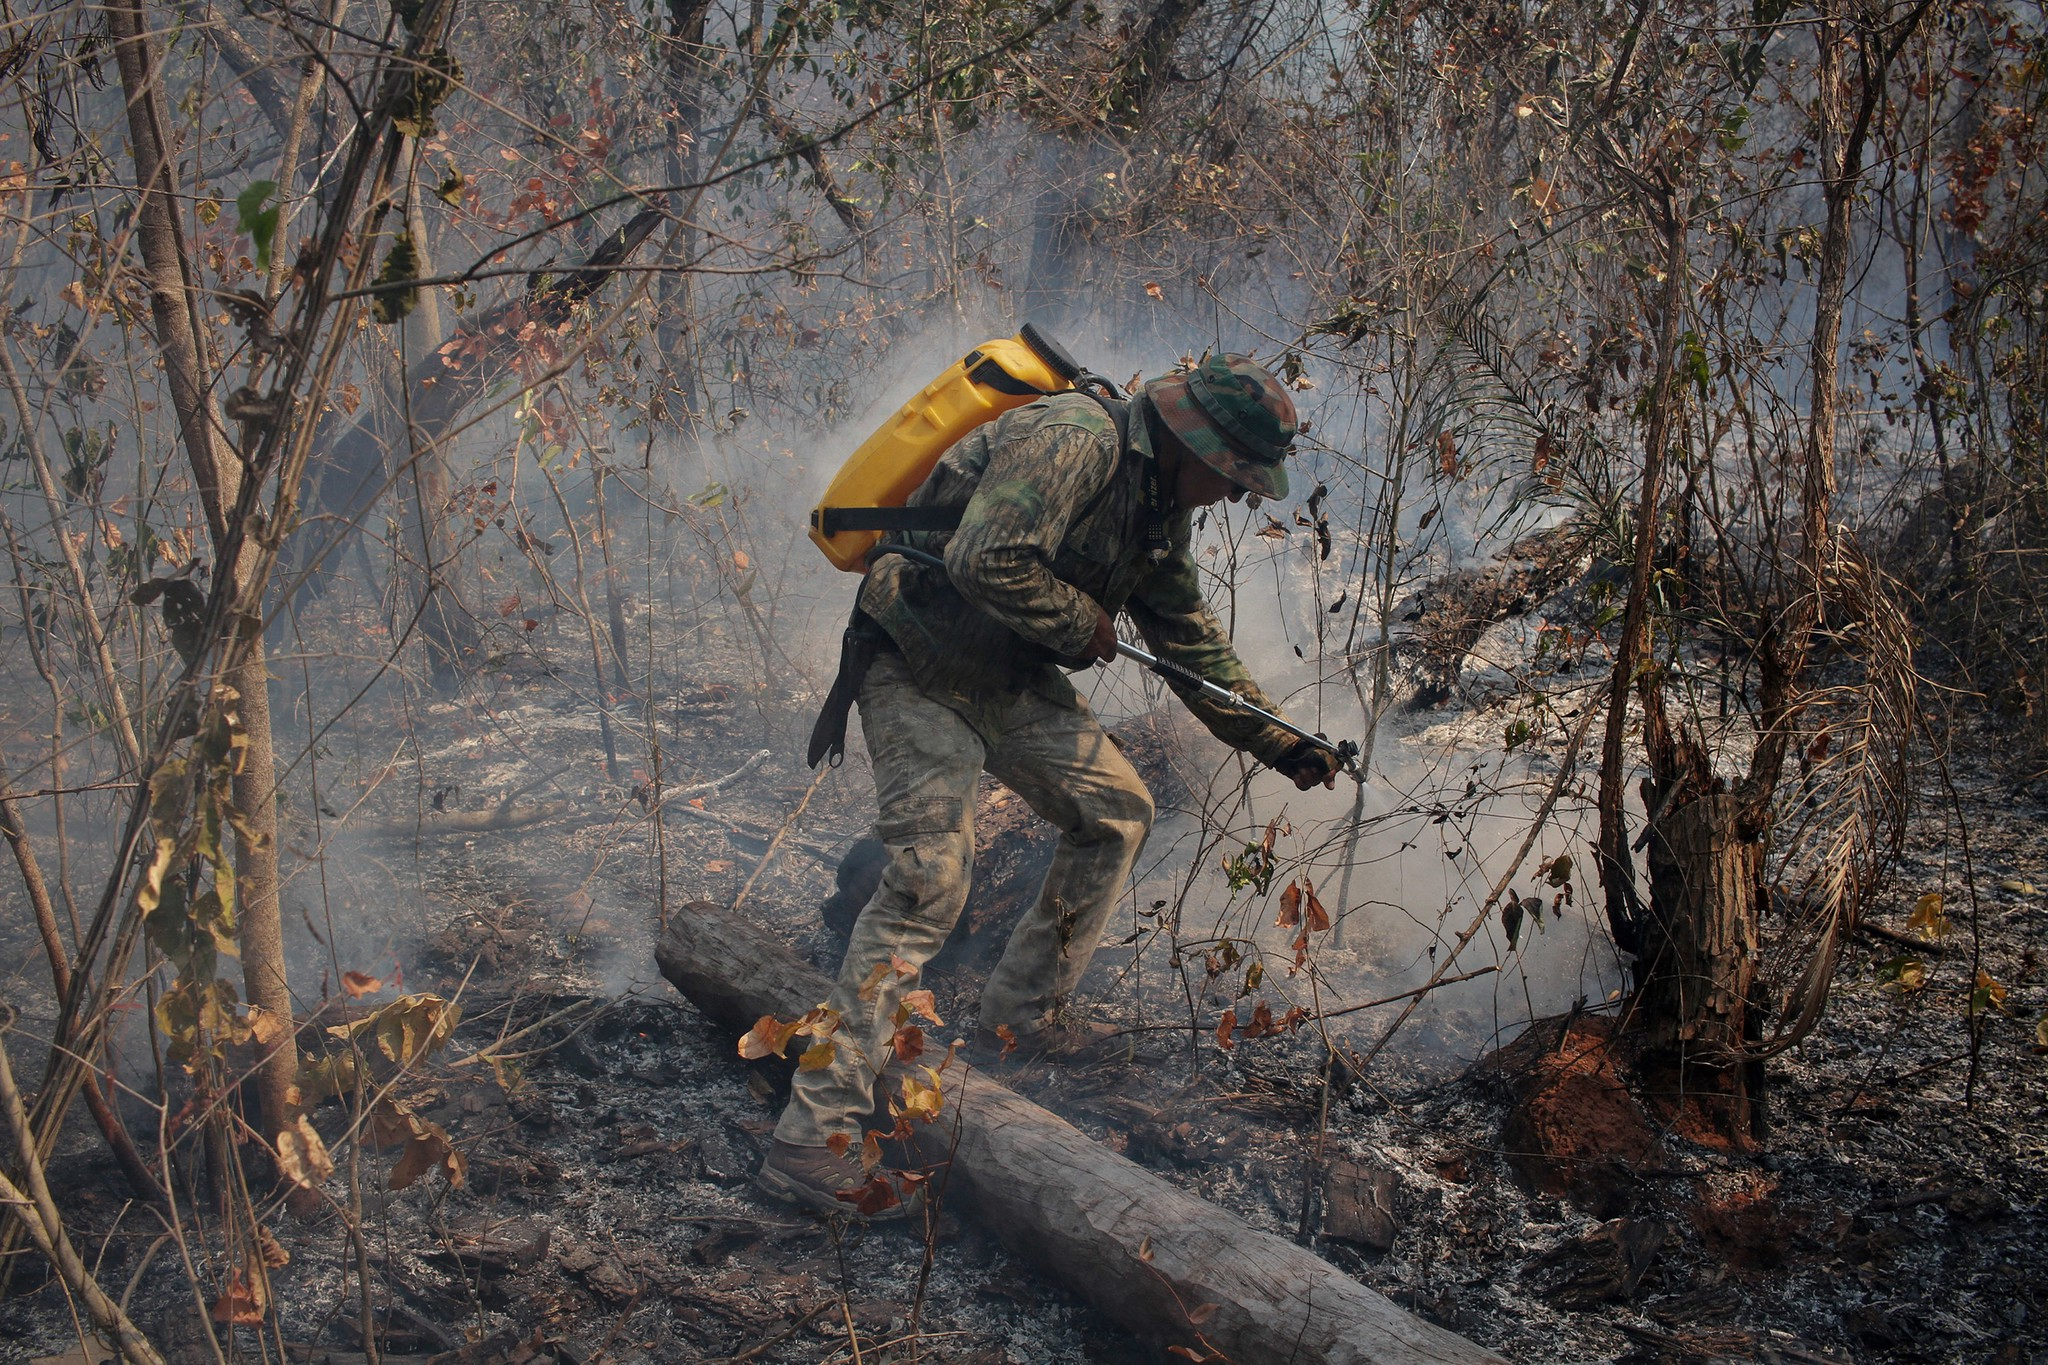 Ranger puts out the fire in one of the areas of Quitununquiña, Bolivia. Photo: Carlos Sánchez